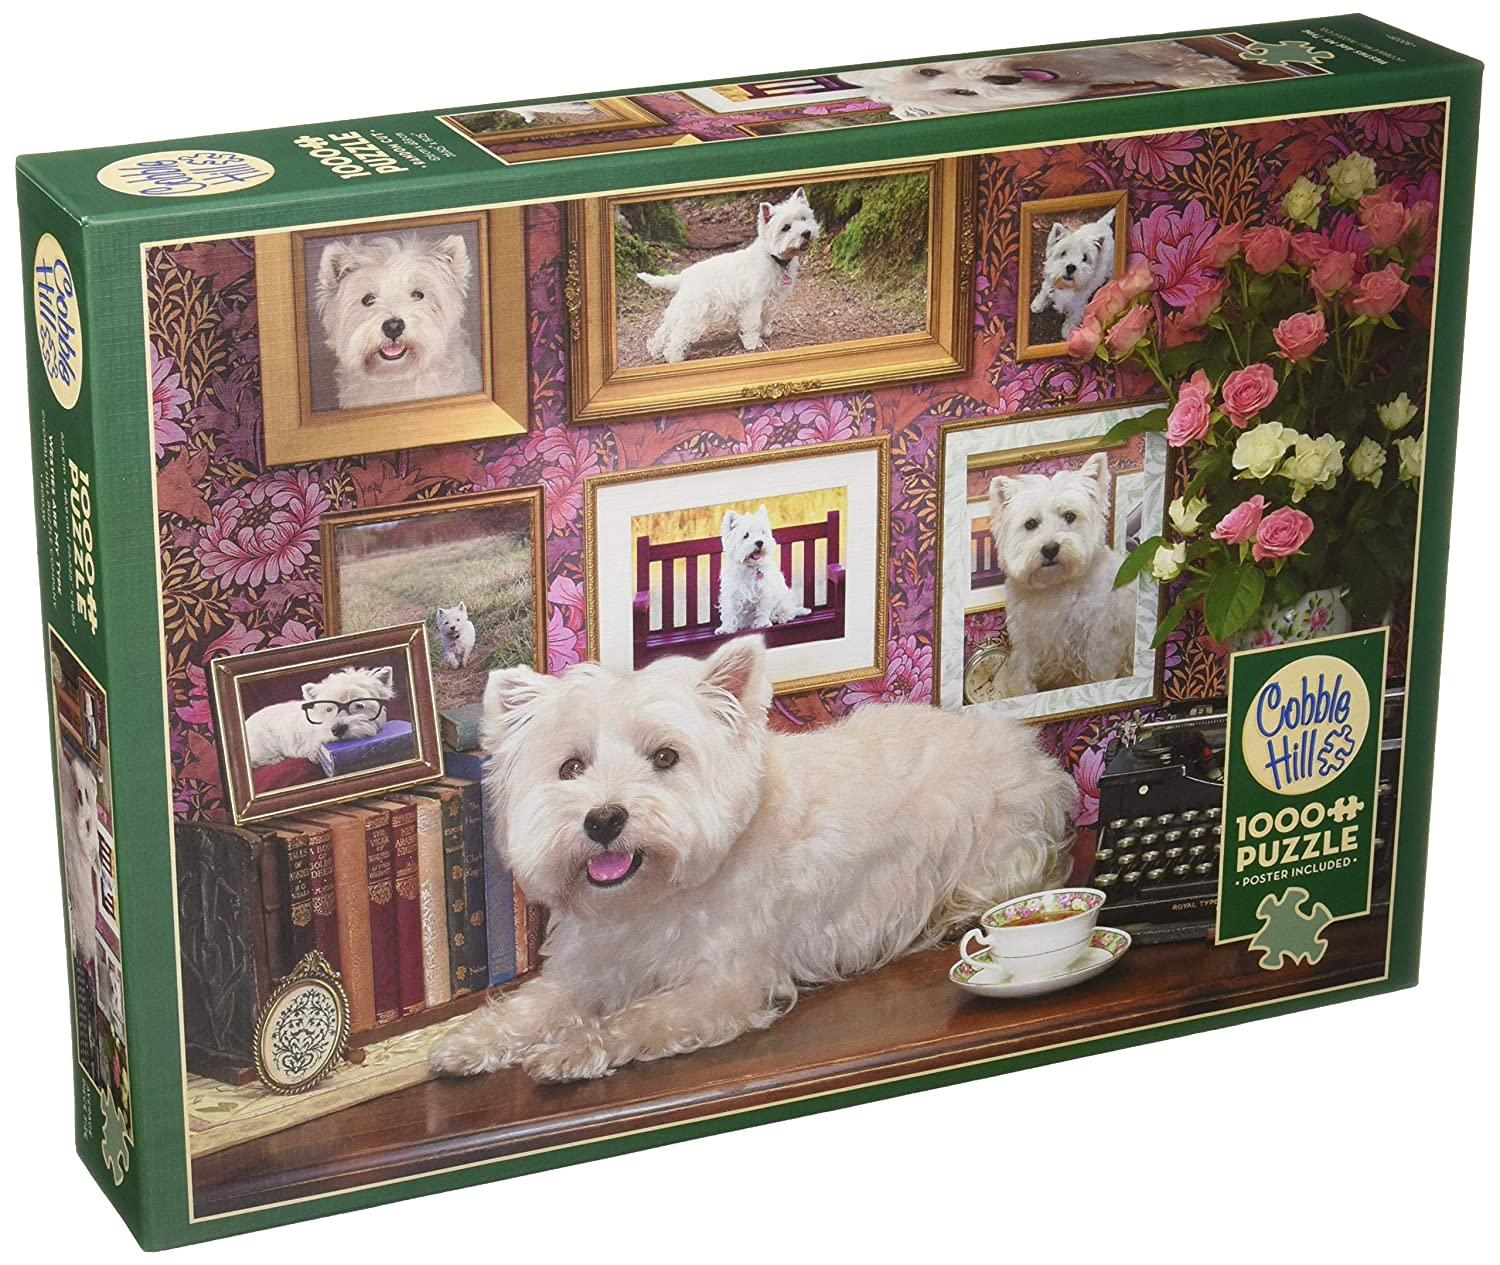 Cobblehill Puzzles 1000 Puzzles B07B4JF77Y pc - Westies Are Are My Type B07B4JF77Y, 楽器問屋:ba1062a2 --- krianta.ru